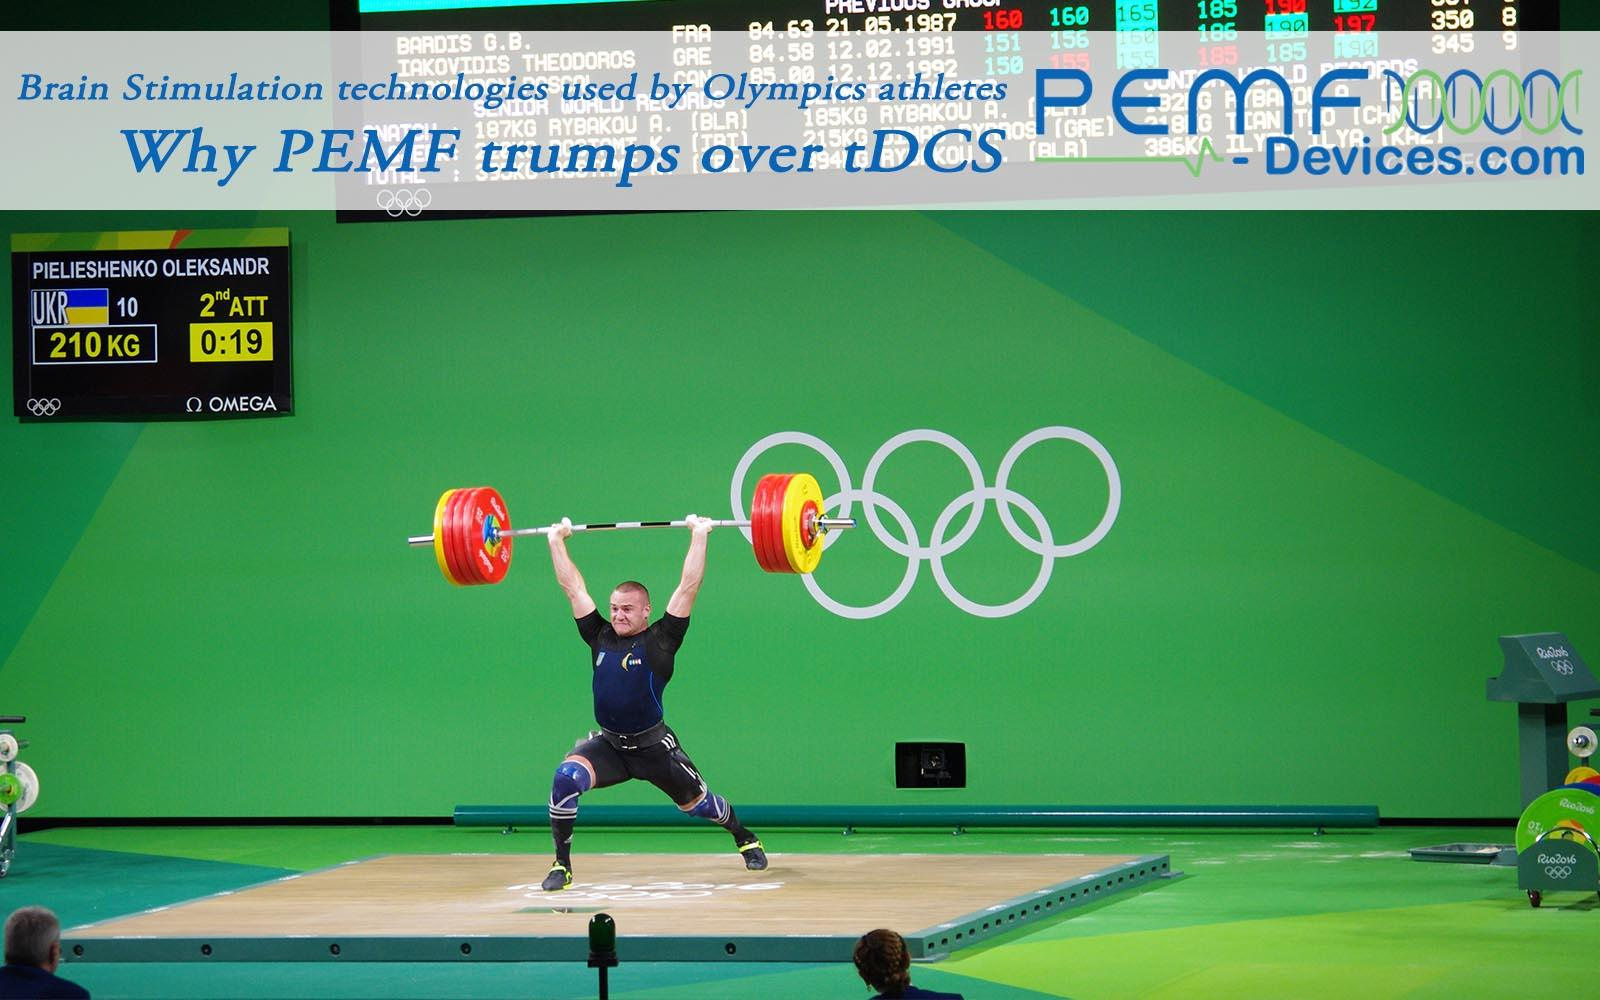 tdcs pemf brain stimulation olympics athletes performance enhancement